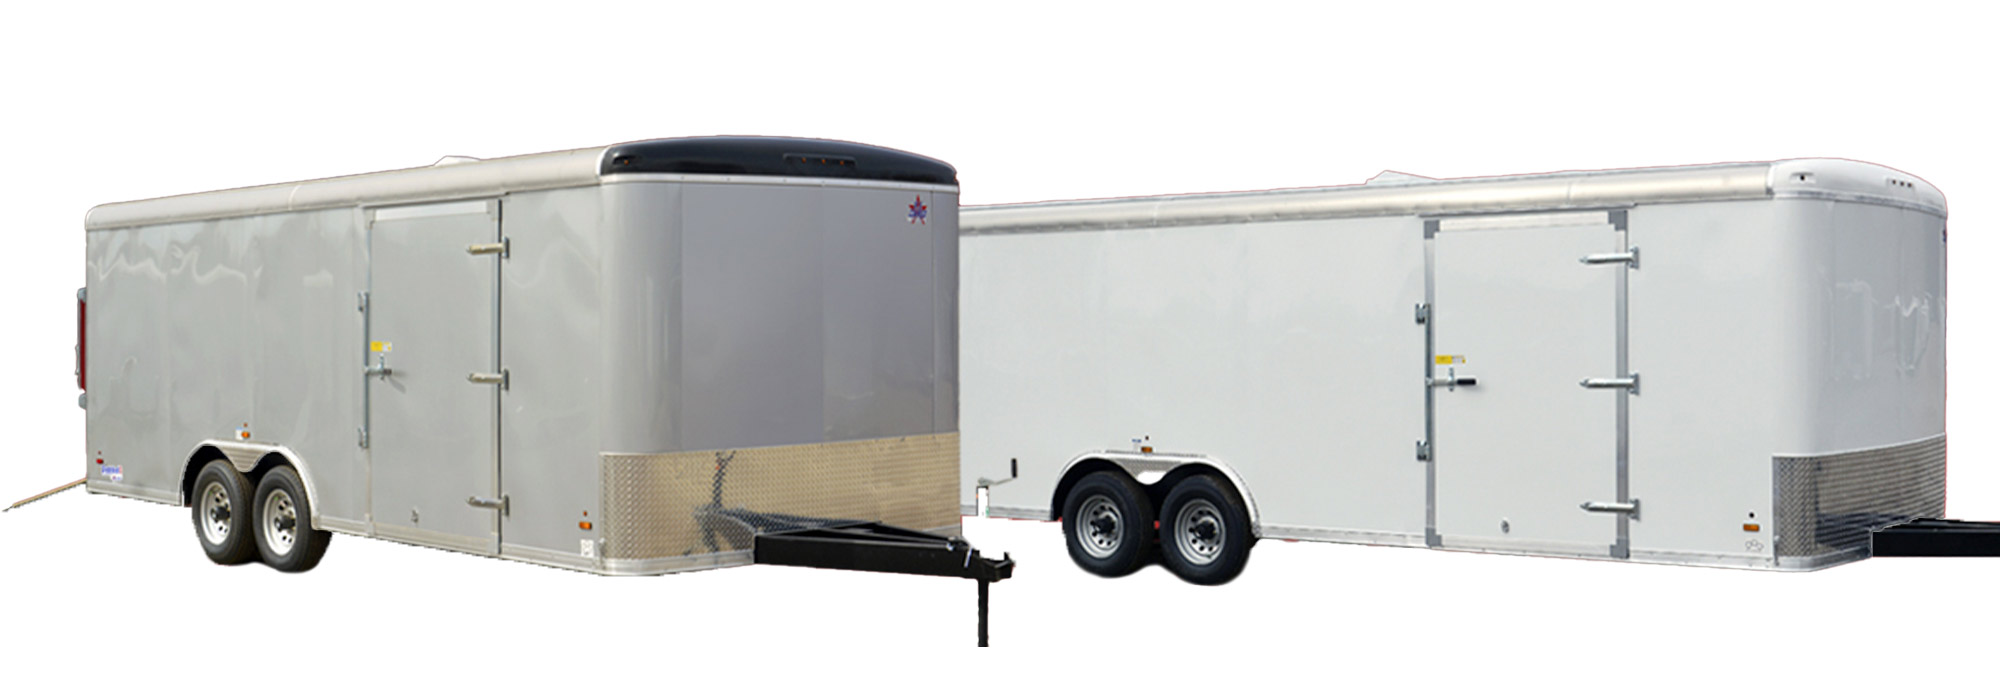 two US Cargo Trailers with side doors